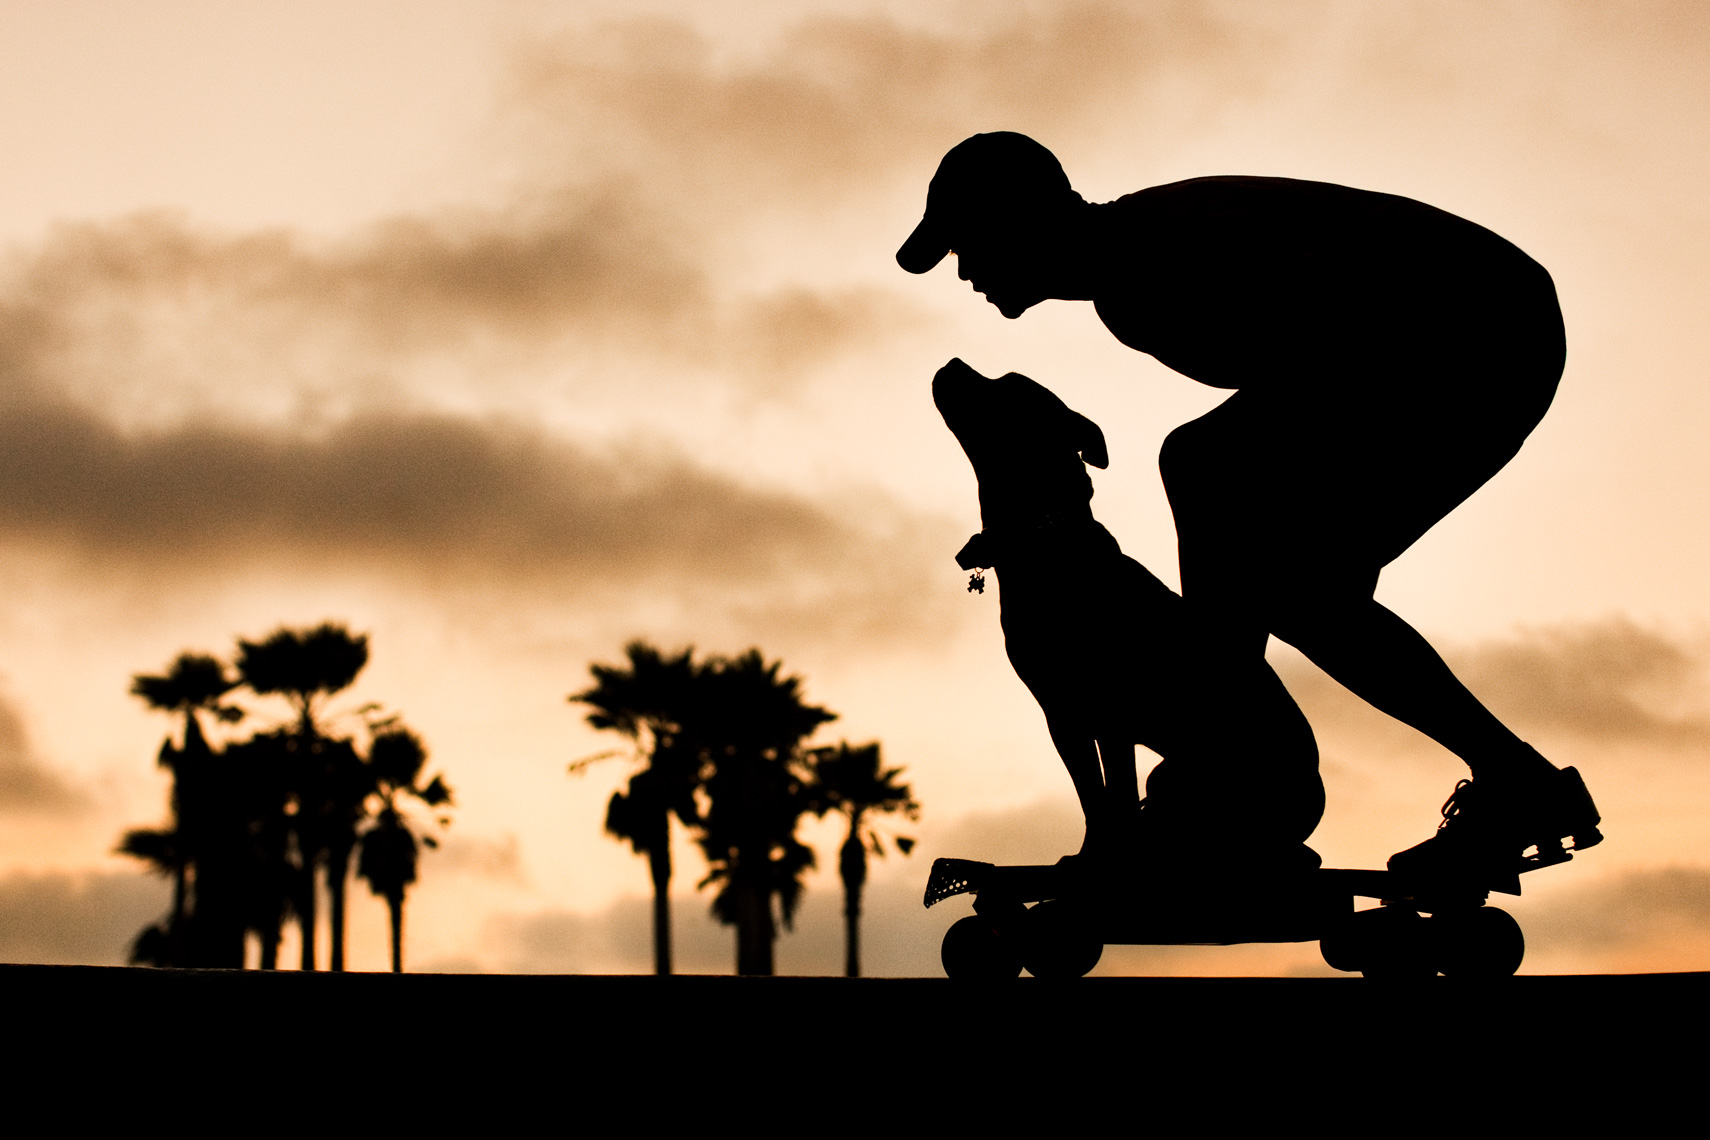 Los Angeles Dog Photography, Michael Brian, pet, cat, Sunset silohouette,  Tyson Kilmer on skateboard with Pit Bull, Dog Trainer, Blue Nose, Kasha Fierce